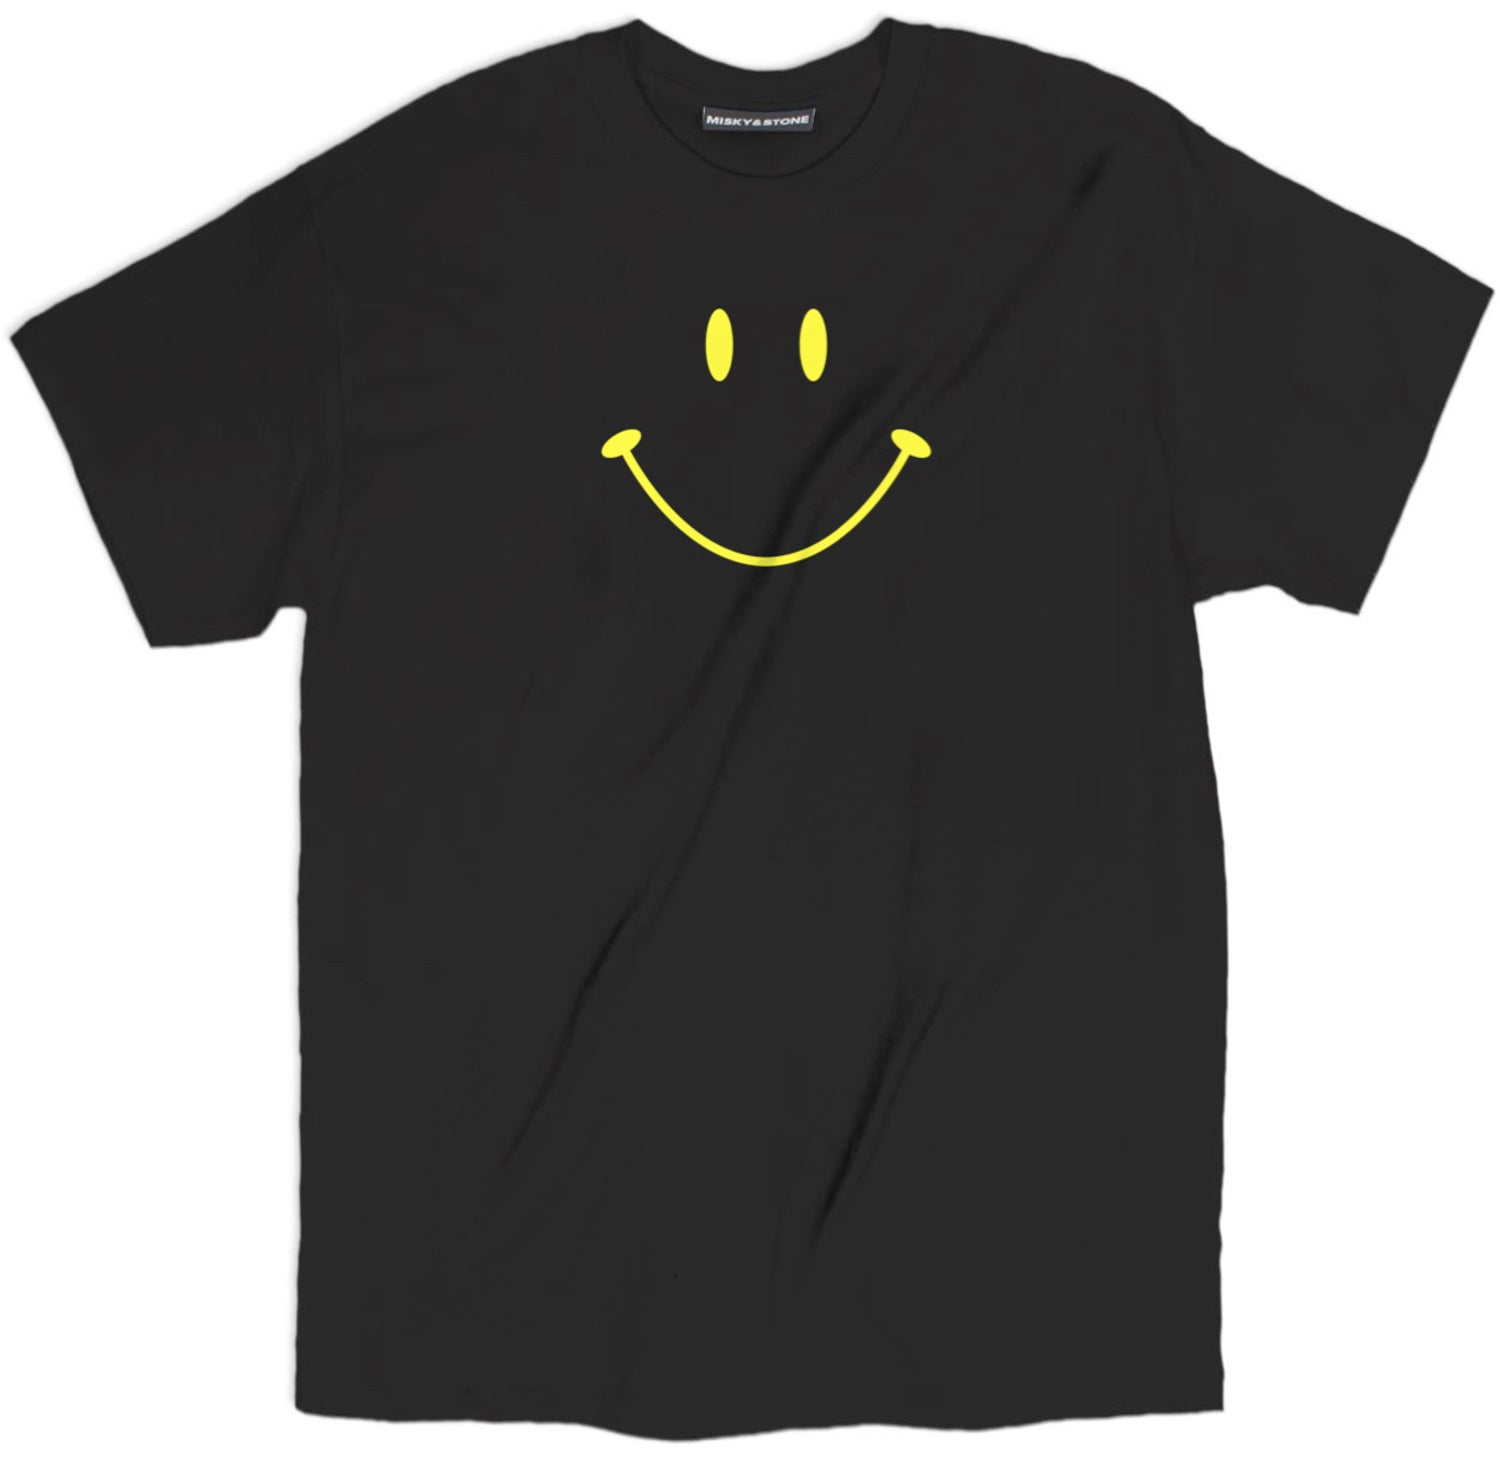 funny rave shirts, rave shirts, rave t shirts, rave apparel, rave clothing, rave tops, rave outfits, edm shirts, edm t shirts, edm clothing, edm apparel, techno t shirt, techno shirt, smiley face t shirt, smiley face shirt, smiley t shirt, happy face t shirt,